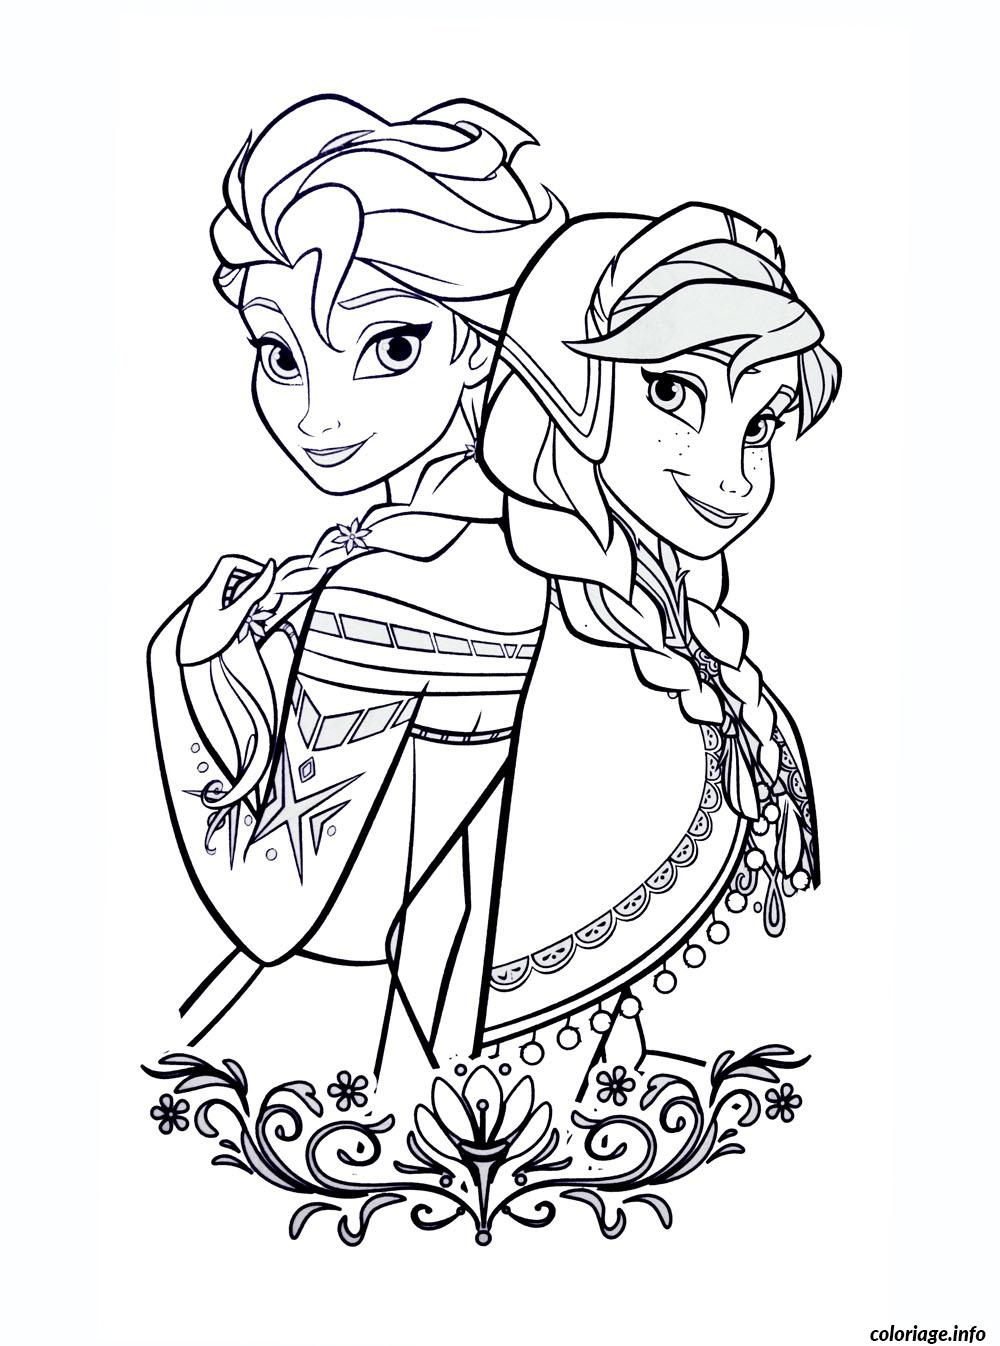 dessin la reine des neiges disney princesse coloriage 9314